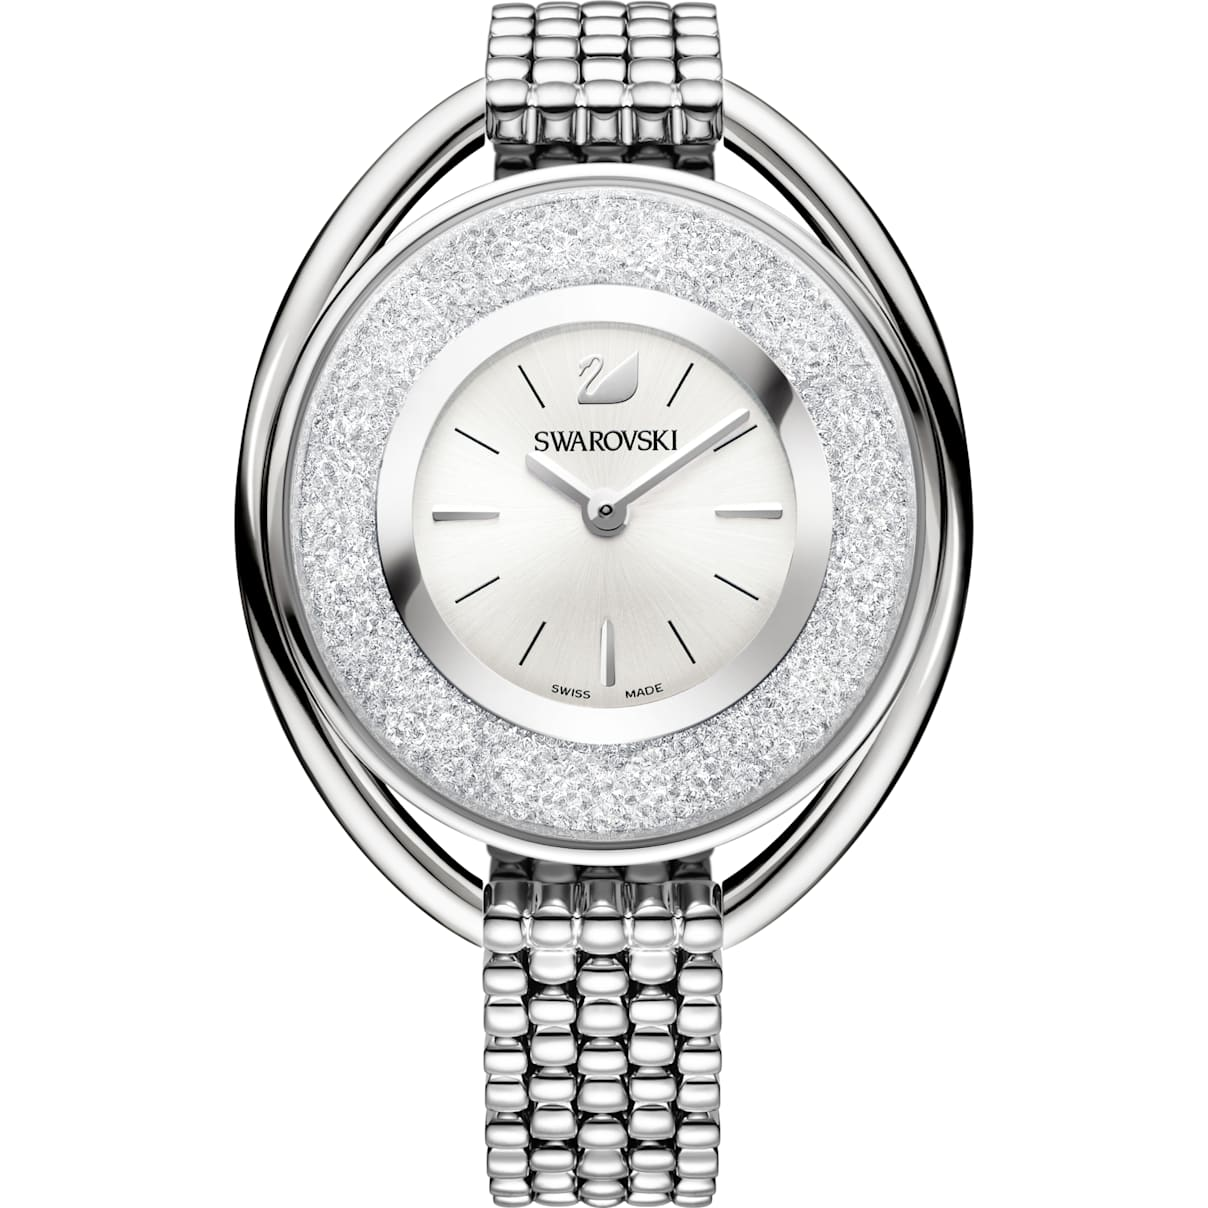 Swarovski Crystalline Oval Watch, Metal bracelet, White, Stainless steel